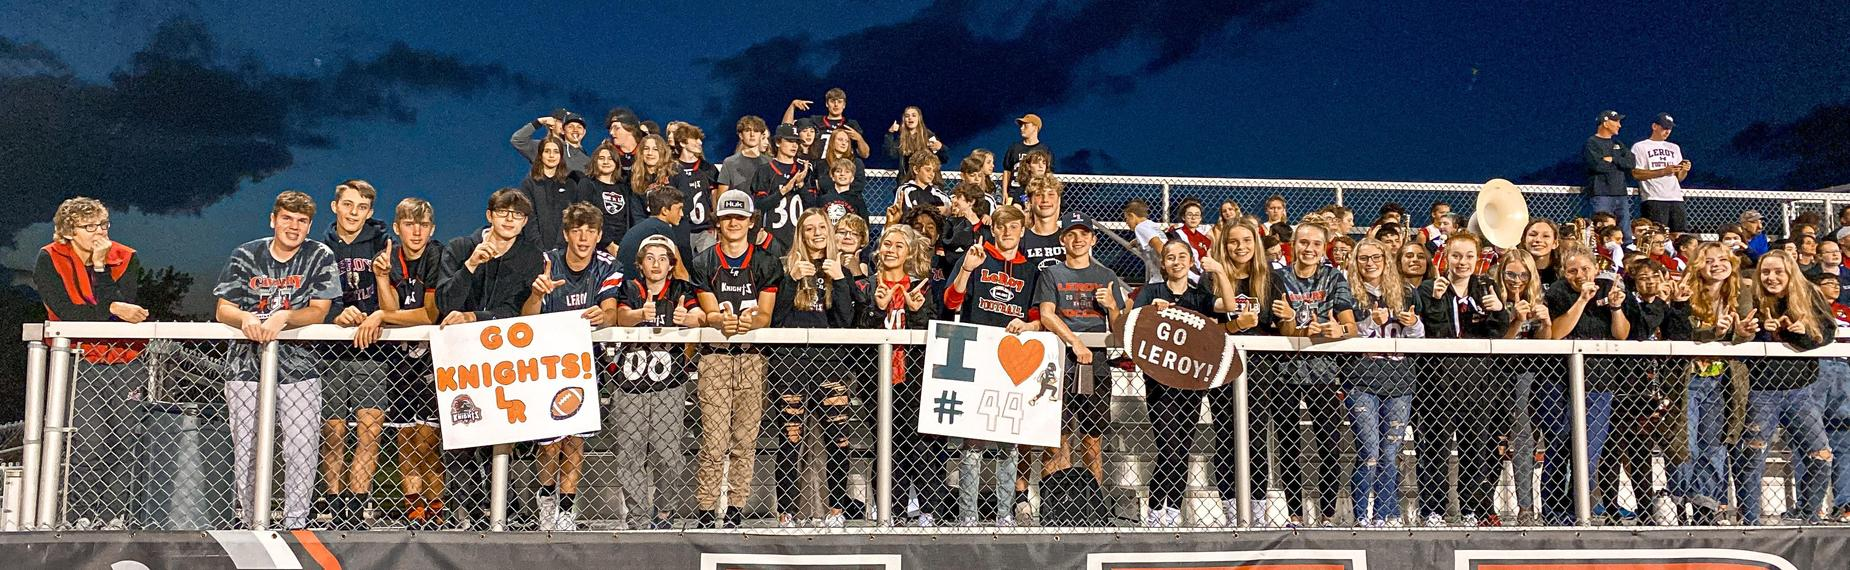 Knight time fans